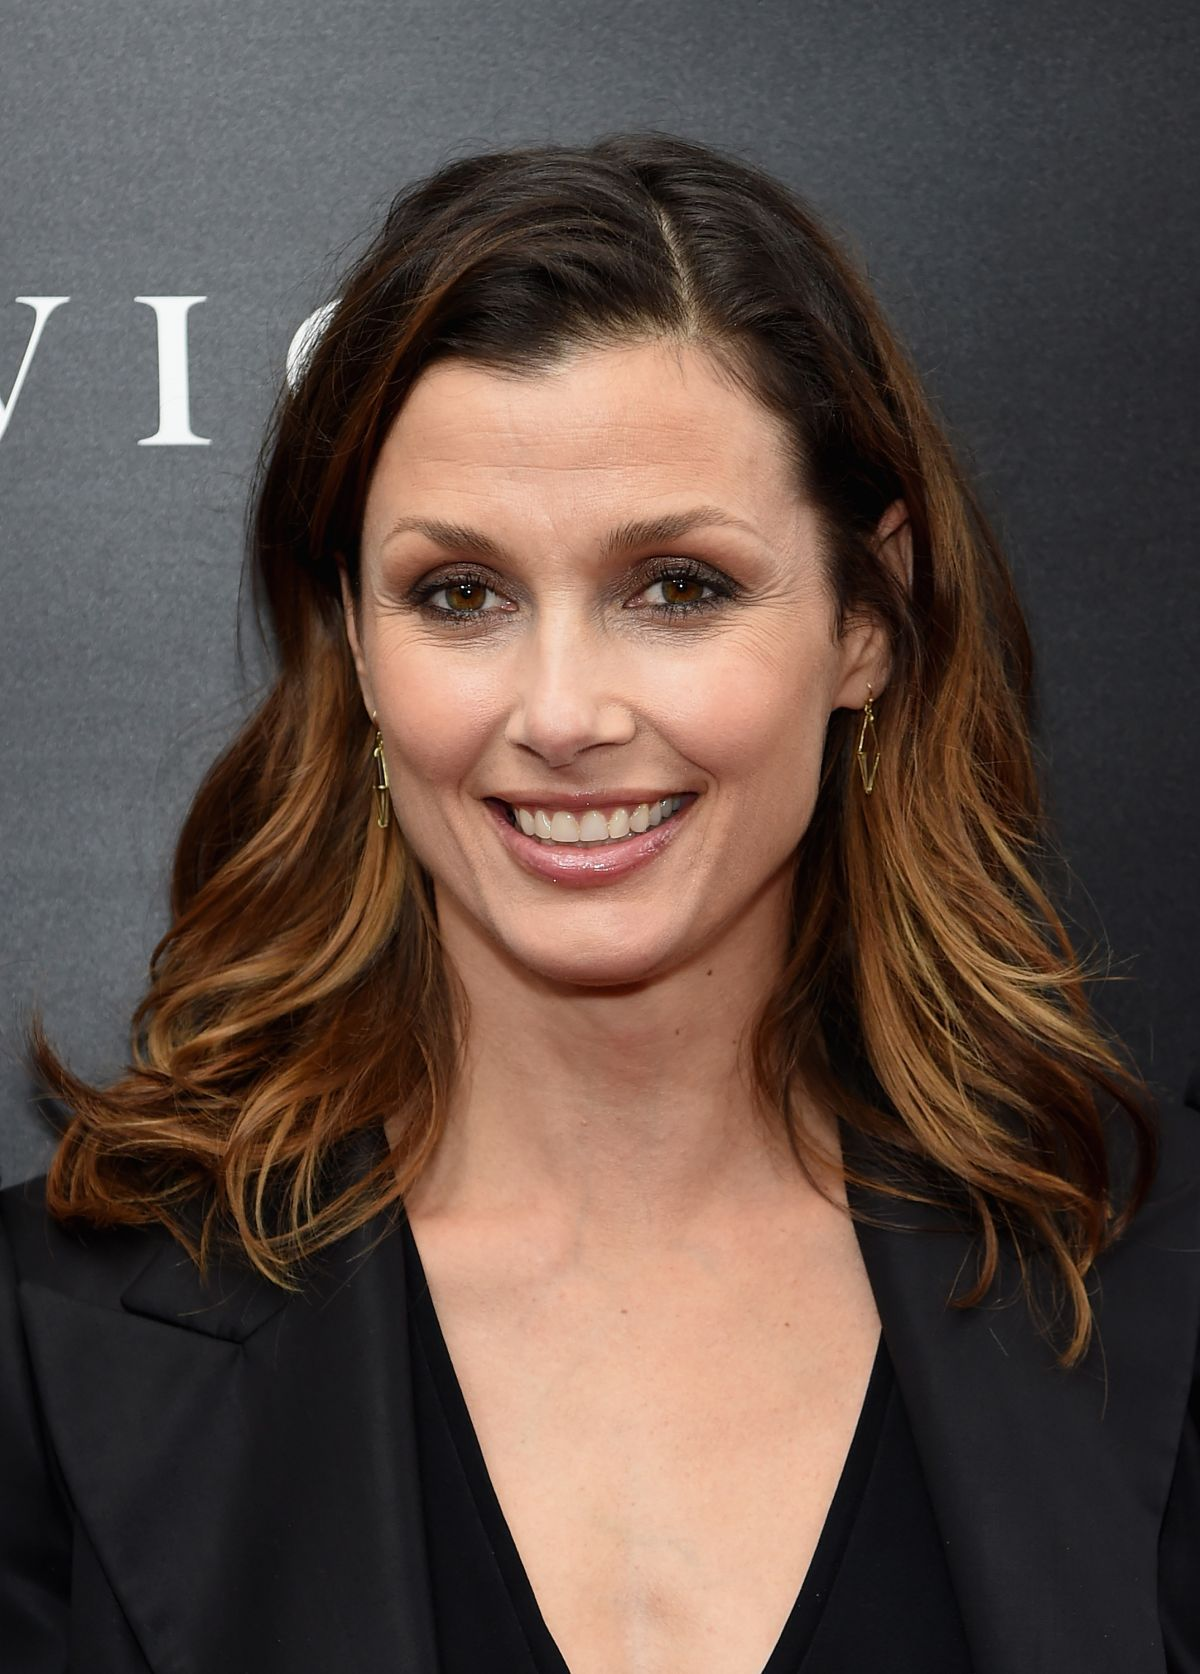 BRIDGET MOYNAHAN at John Wick Premiere in New York